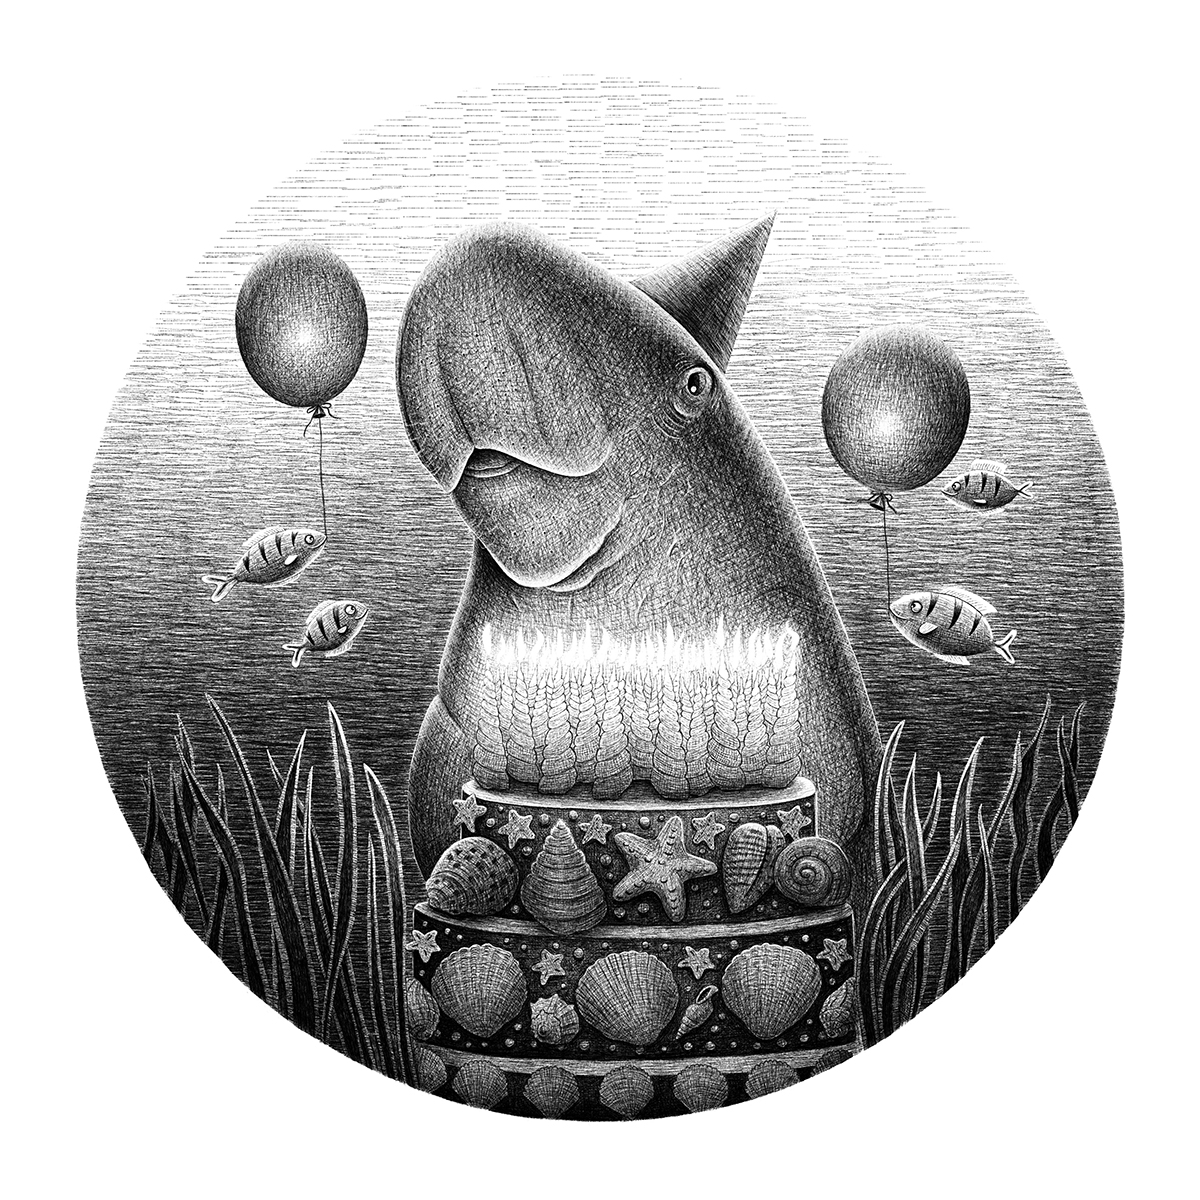 Dugong birthday black and white illustration endangered animals lucia eggenhoffer illustrator